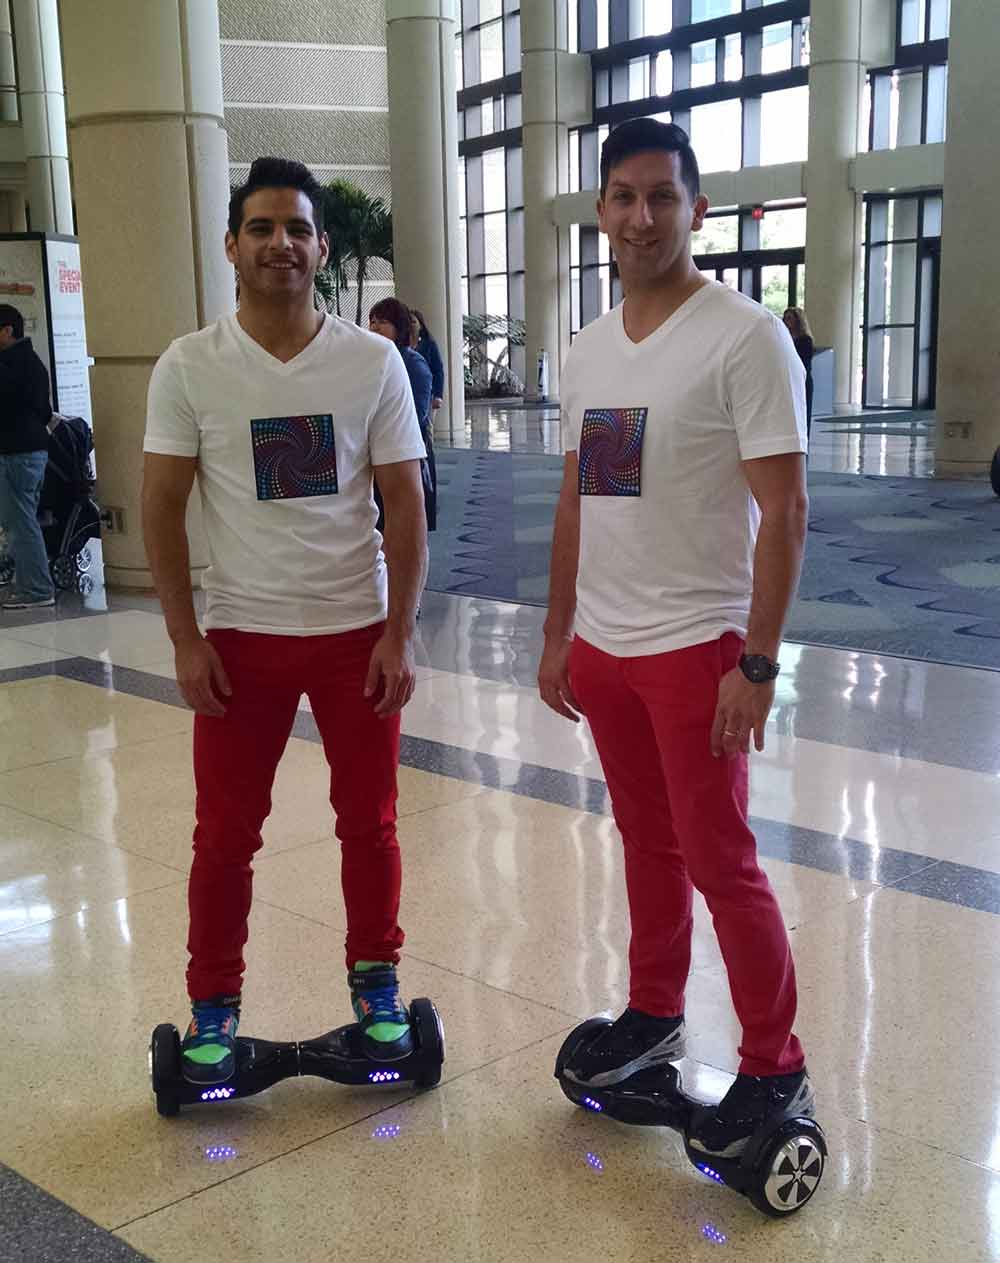 Men on hoverboards